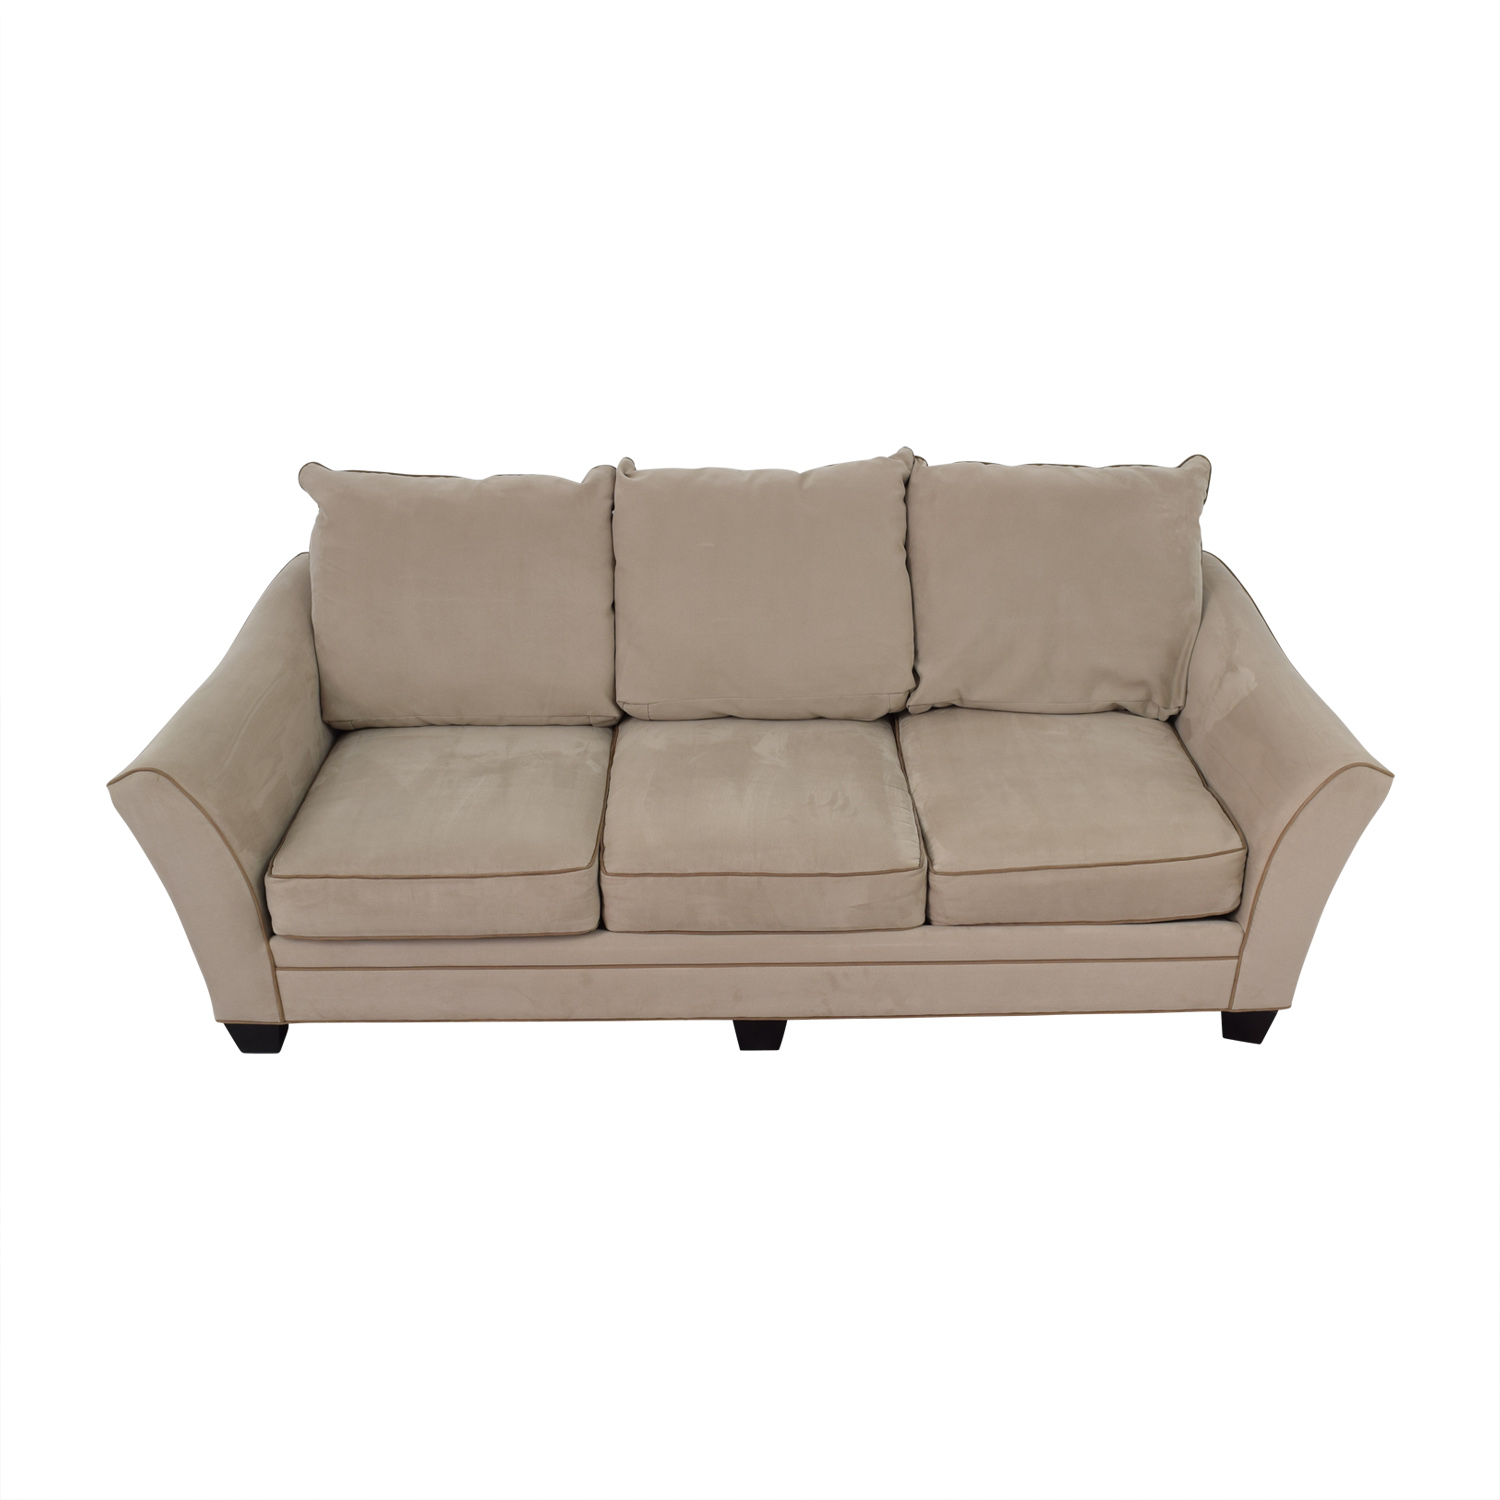 english arm sofa restoration hardware 80 inch with chaise 79 off